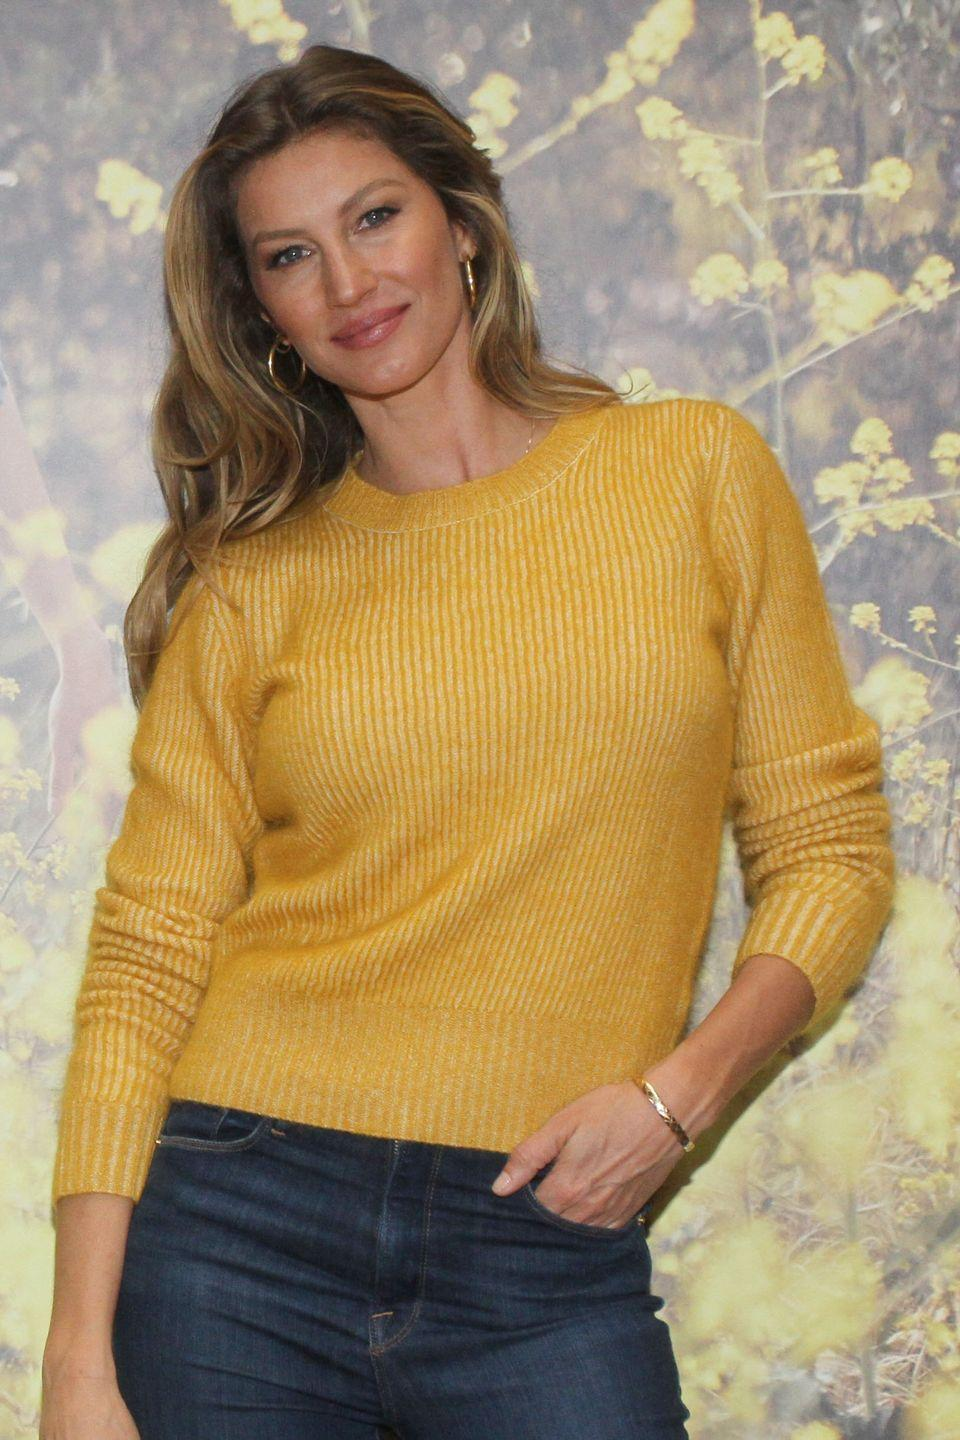 """<p>After breastfeeding two of her children, supermodel Gisele Bündchen got breast implants and immediately regretted the decision. 'I felt very vulnerable, because I can work out, I can eat healthy, but I can't change the fact that both of my kids enjoyed the left boob more than the right. All I wanted was for them to be even and for people to stop commenting on it,' <a href=""""https://people.com/style/gisele-bundchen-boob-job-breastfeeding-kids-regret/"""" rel=""""nofollow noopener"""" target=""""_blank"""" data-ylk=""""slk:Gisele told People"""" class=""""link rapid-noclick-resp"""">Gisele told People</a>. 'When I woke up, I was like, 'What have I done?' I felt like I was living in a body I didn't recognise. For the first year I wore [baggy] clothes because I felt uncomfortable.'</p>"""